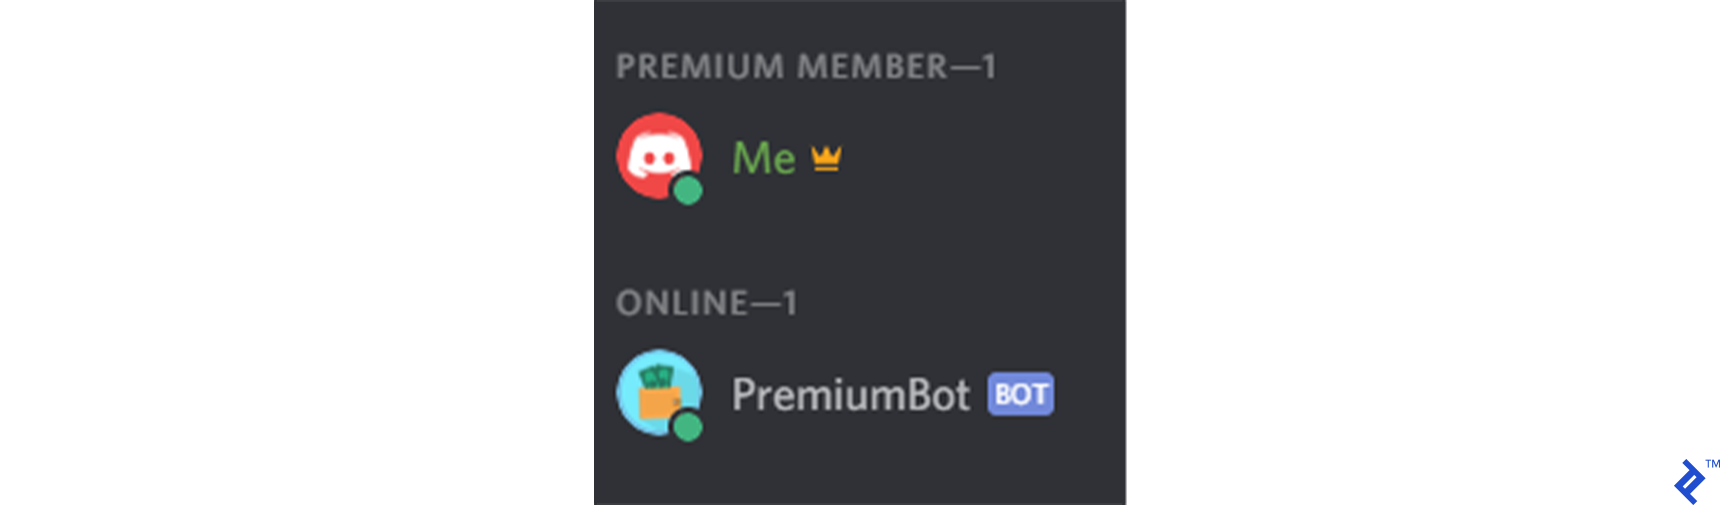 How to Make a Discord Bot: Overview and Tutorial | Toptal